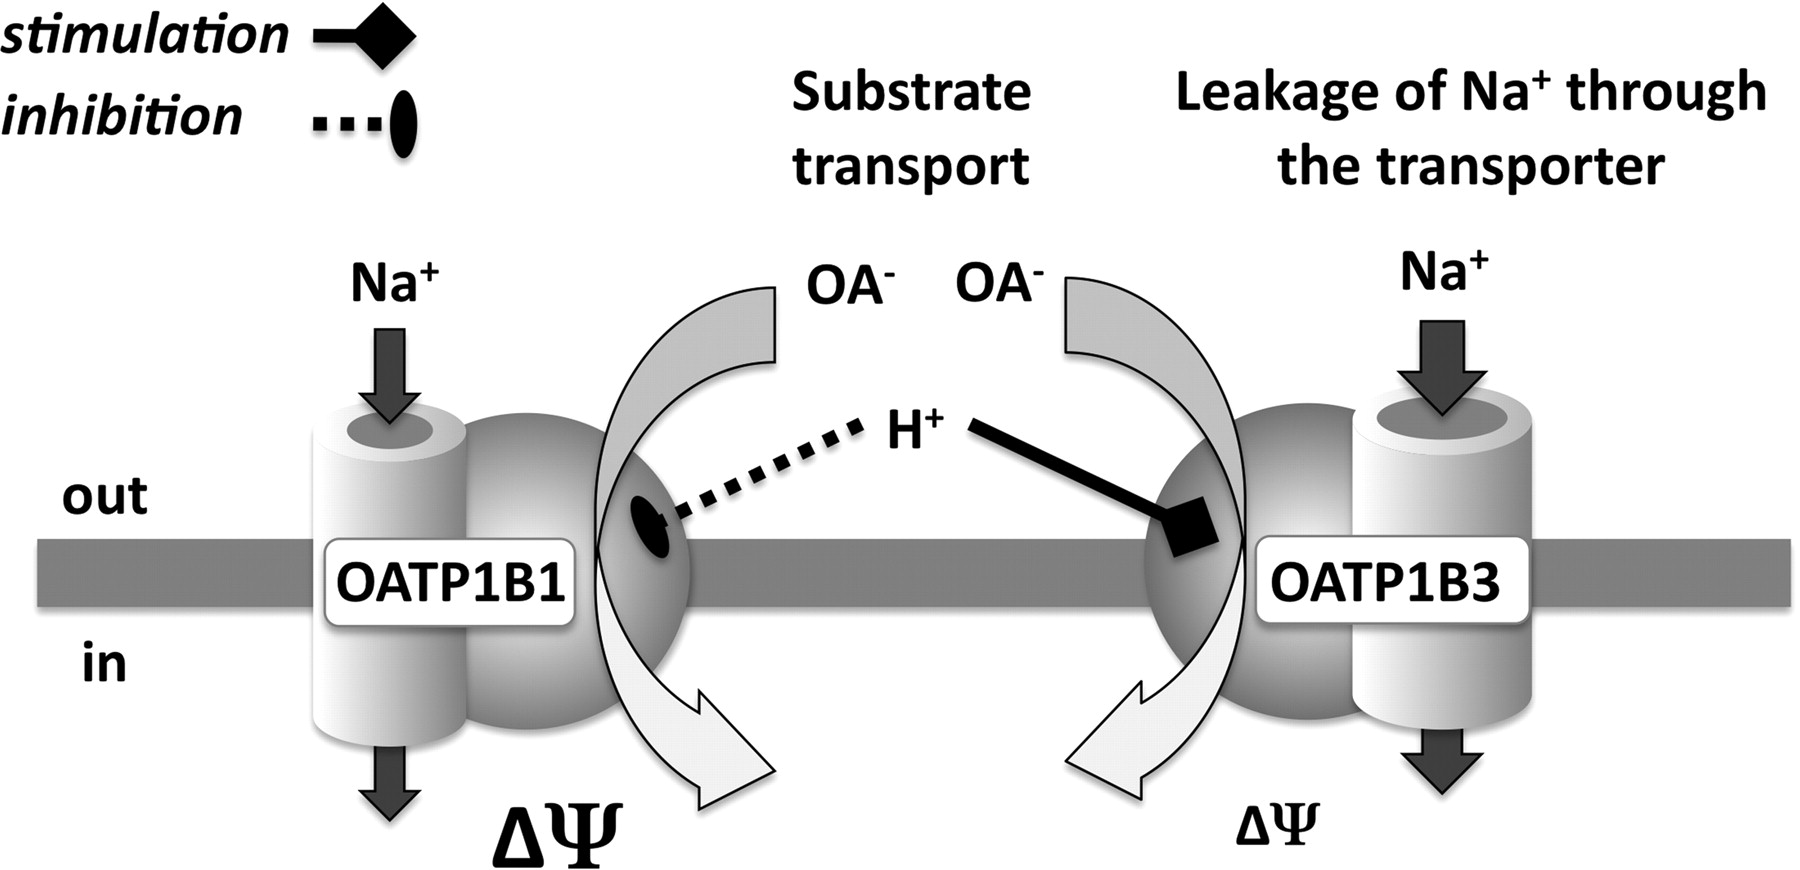 interaction of human organic anion transporters Abstract the liver-specific organic anion transporting polypeptides oatp1b1 and oatp1b3 are highly homologous and share numerous substrates however, at low concentrations oatp1b1 shows substrate selectivity for estrone-3-sulfate.